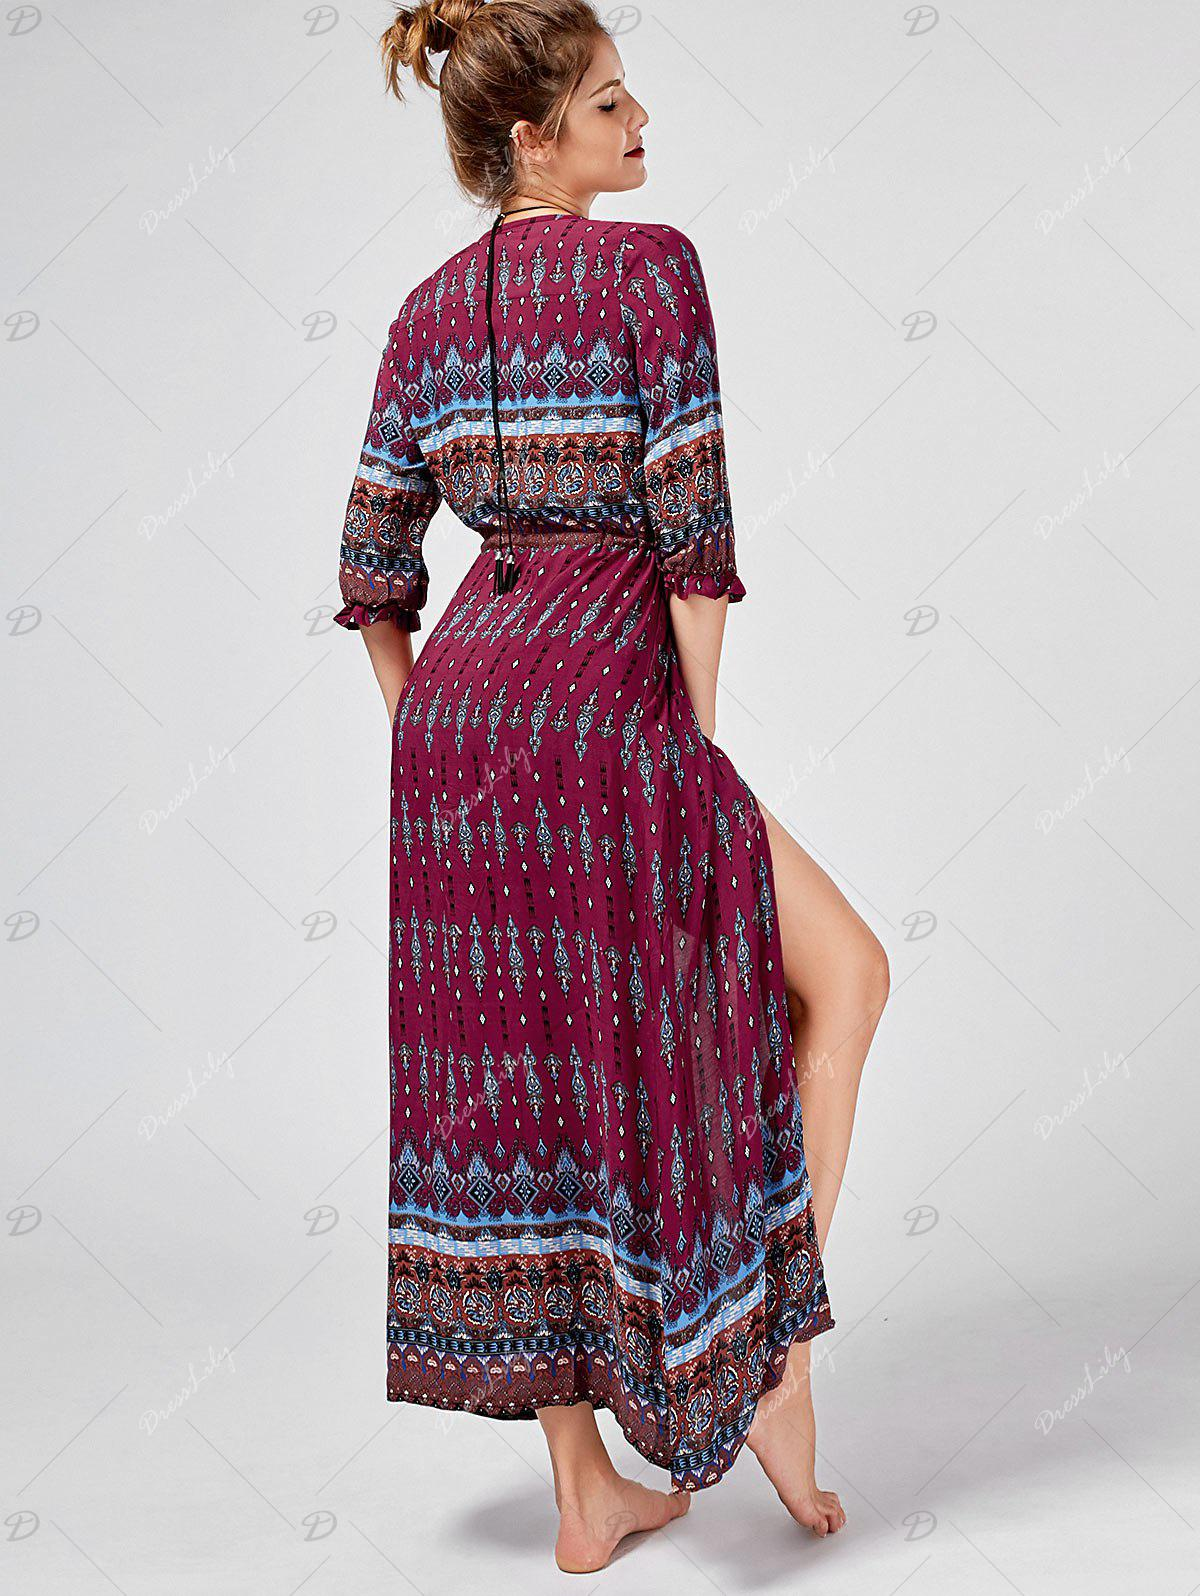 Tribal Print Button Down Split Bohemian Dress - WINE RED XL